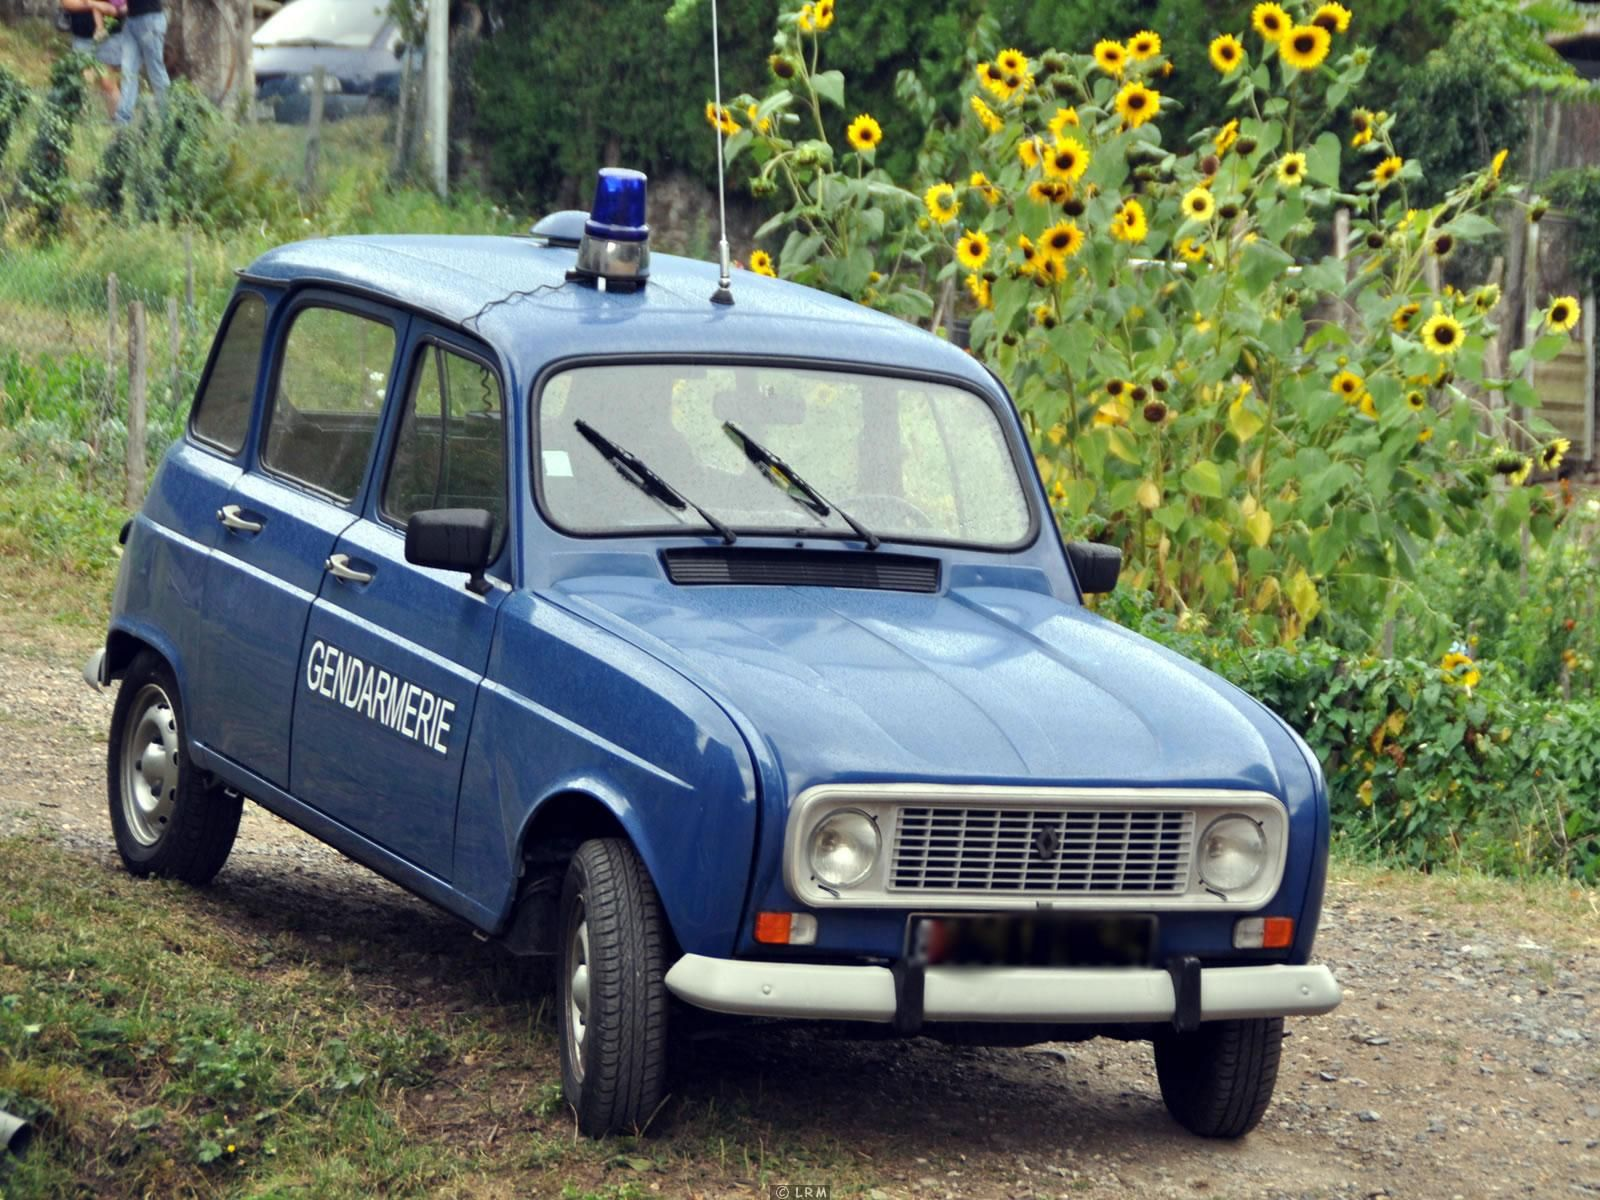 louer une renault 4 gendarmerie de 1985 photo 1 fitaova gatry coches autos et renault 4. Black Bedroom Furniture Sets. Home Design Ideas